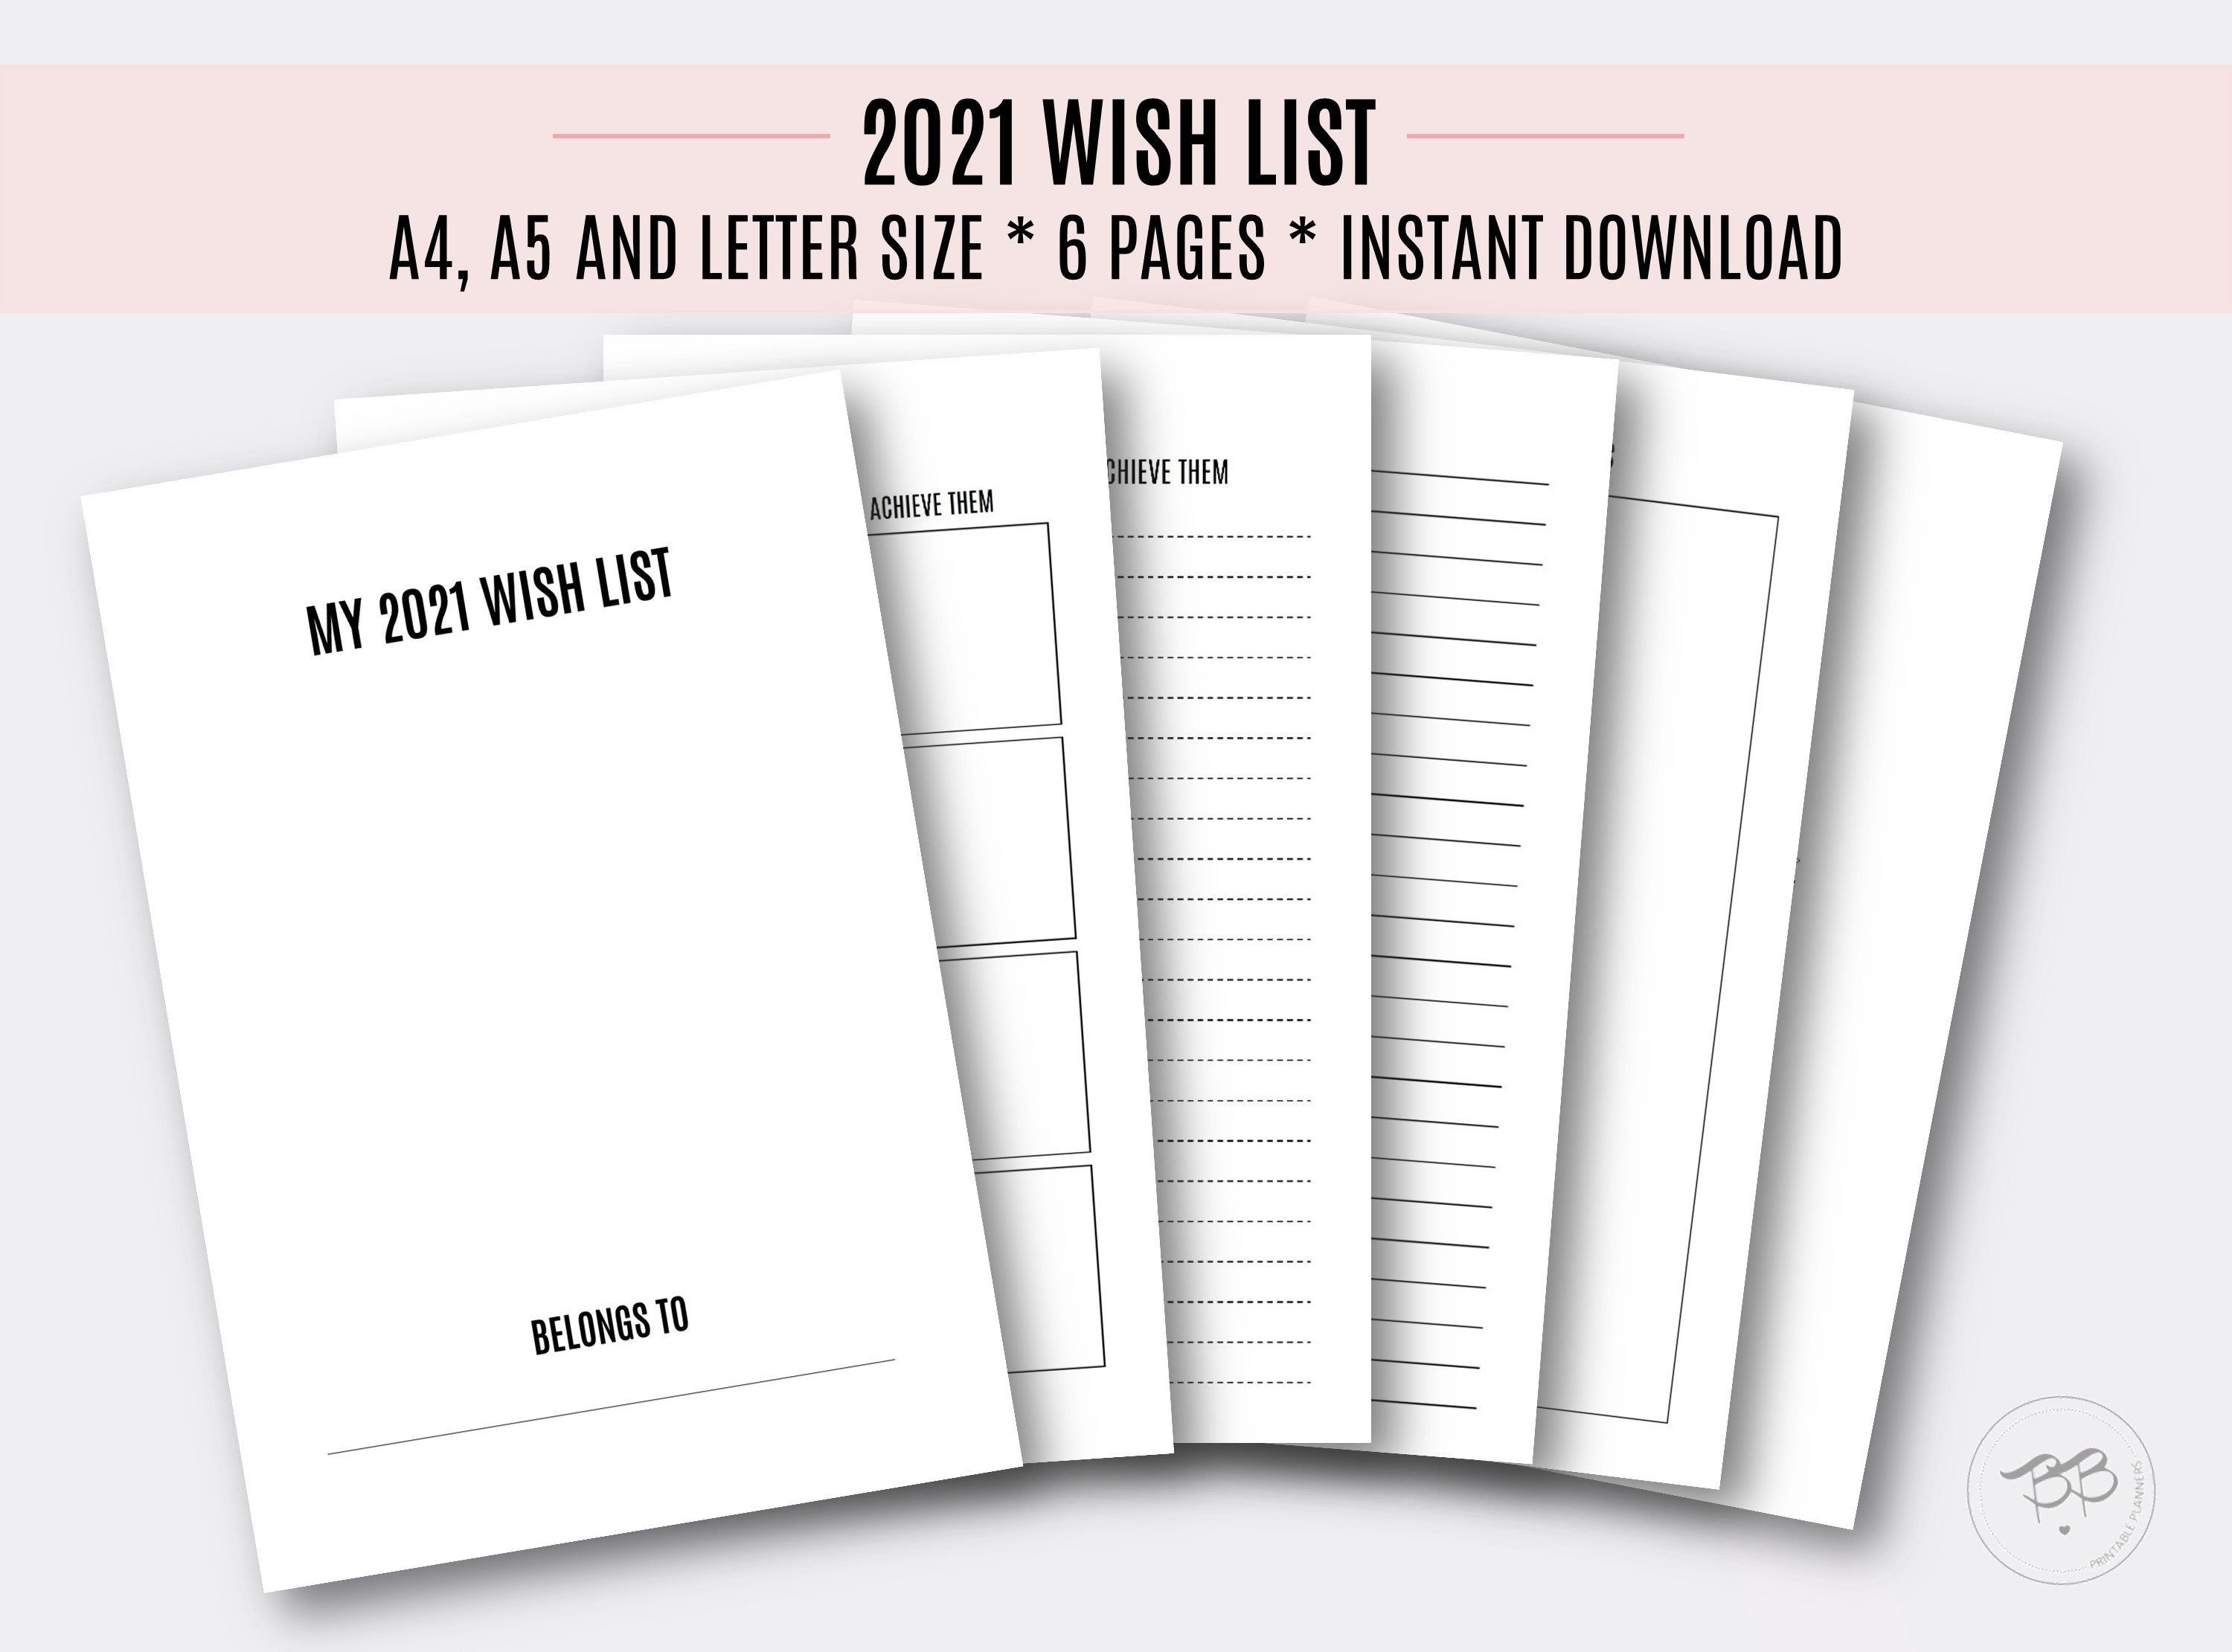 Best Way To Organize Digital Photos 2021 2021 Wish List/ A4, A5, Letter size/ Goals planning/ Life